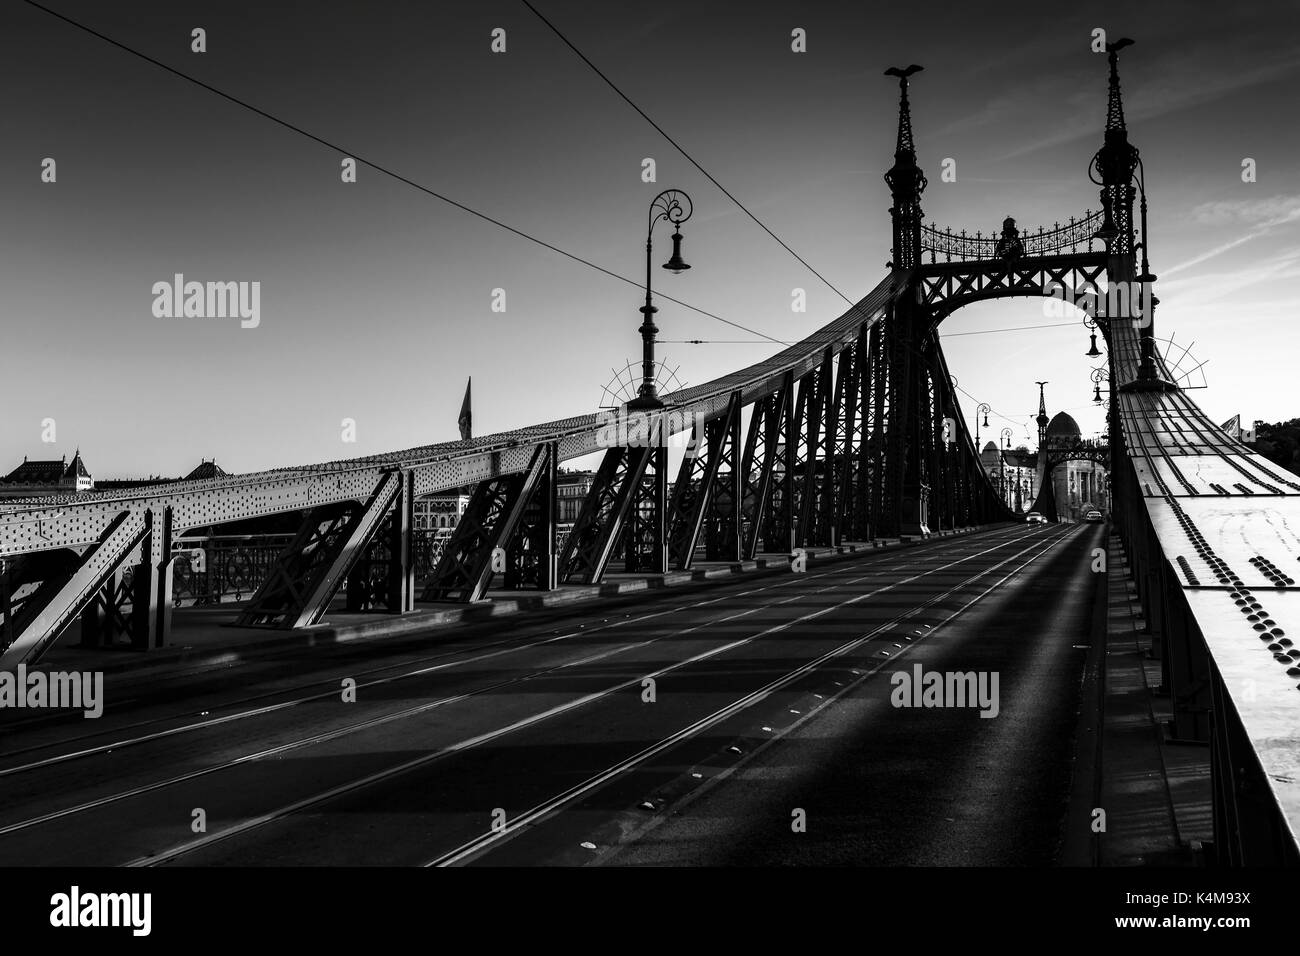 Liberty Bridge over river Danube in city centre of Budapest, Hungary. - Stock Image